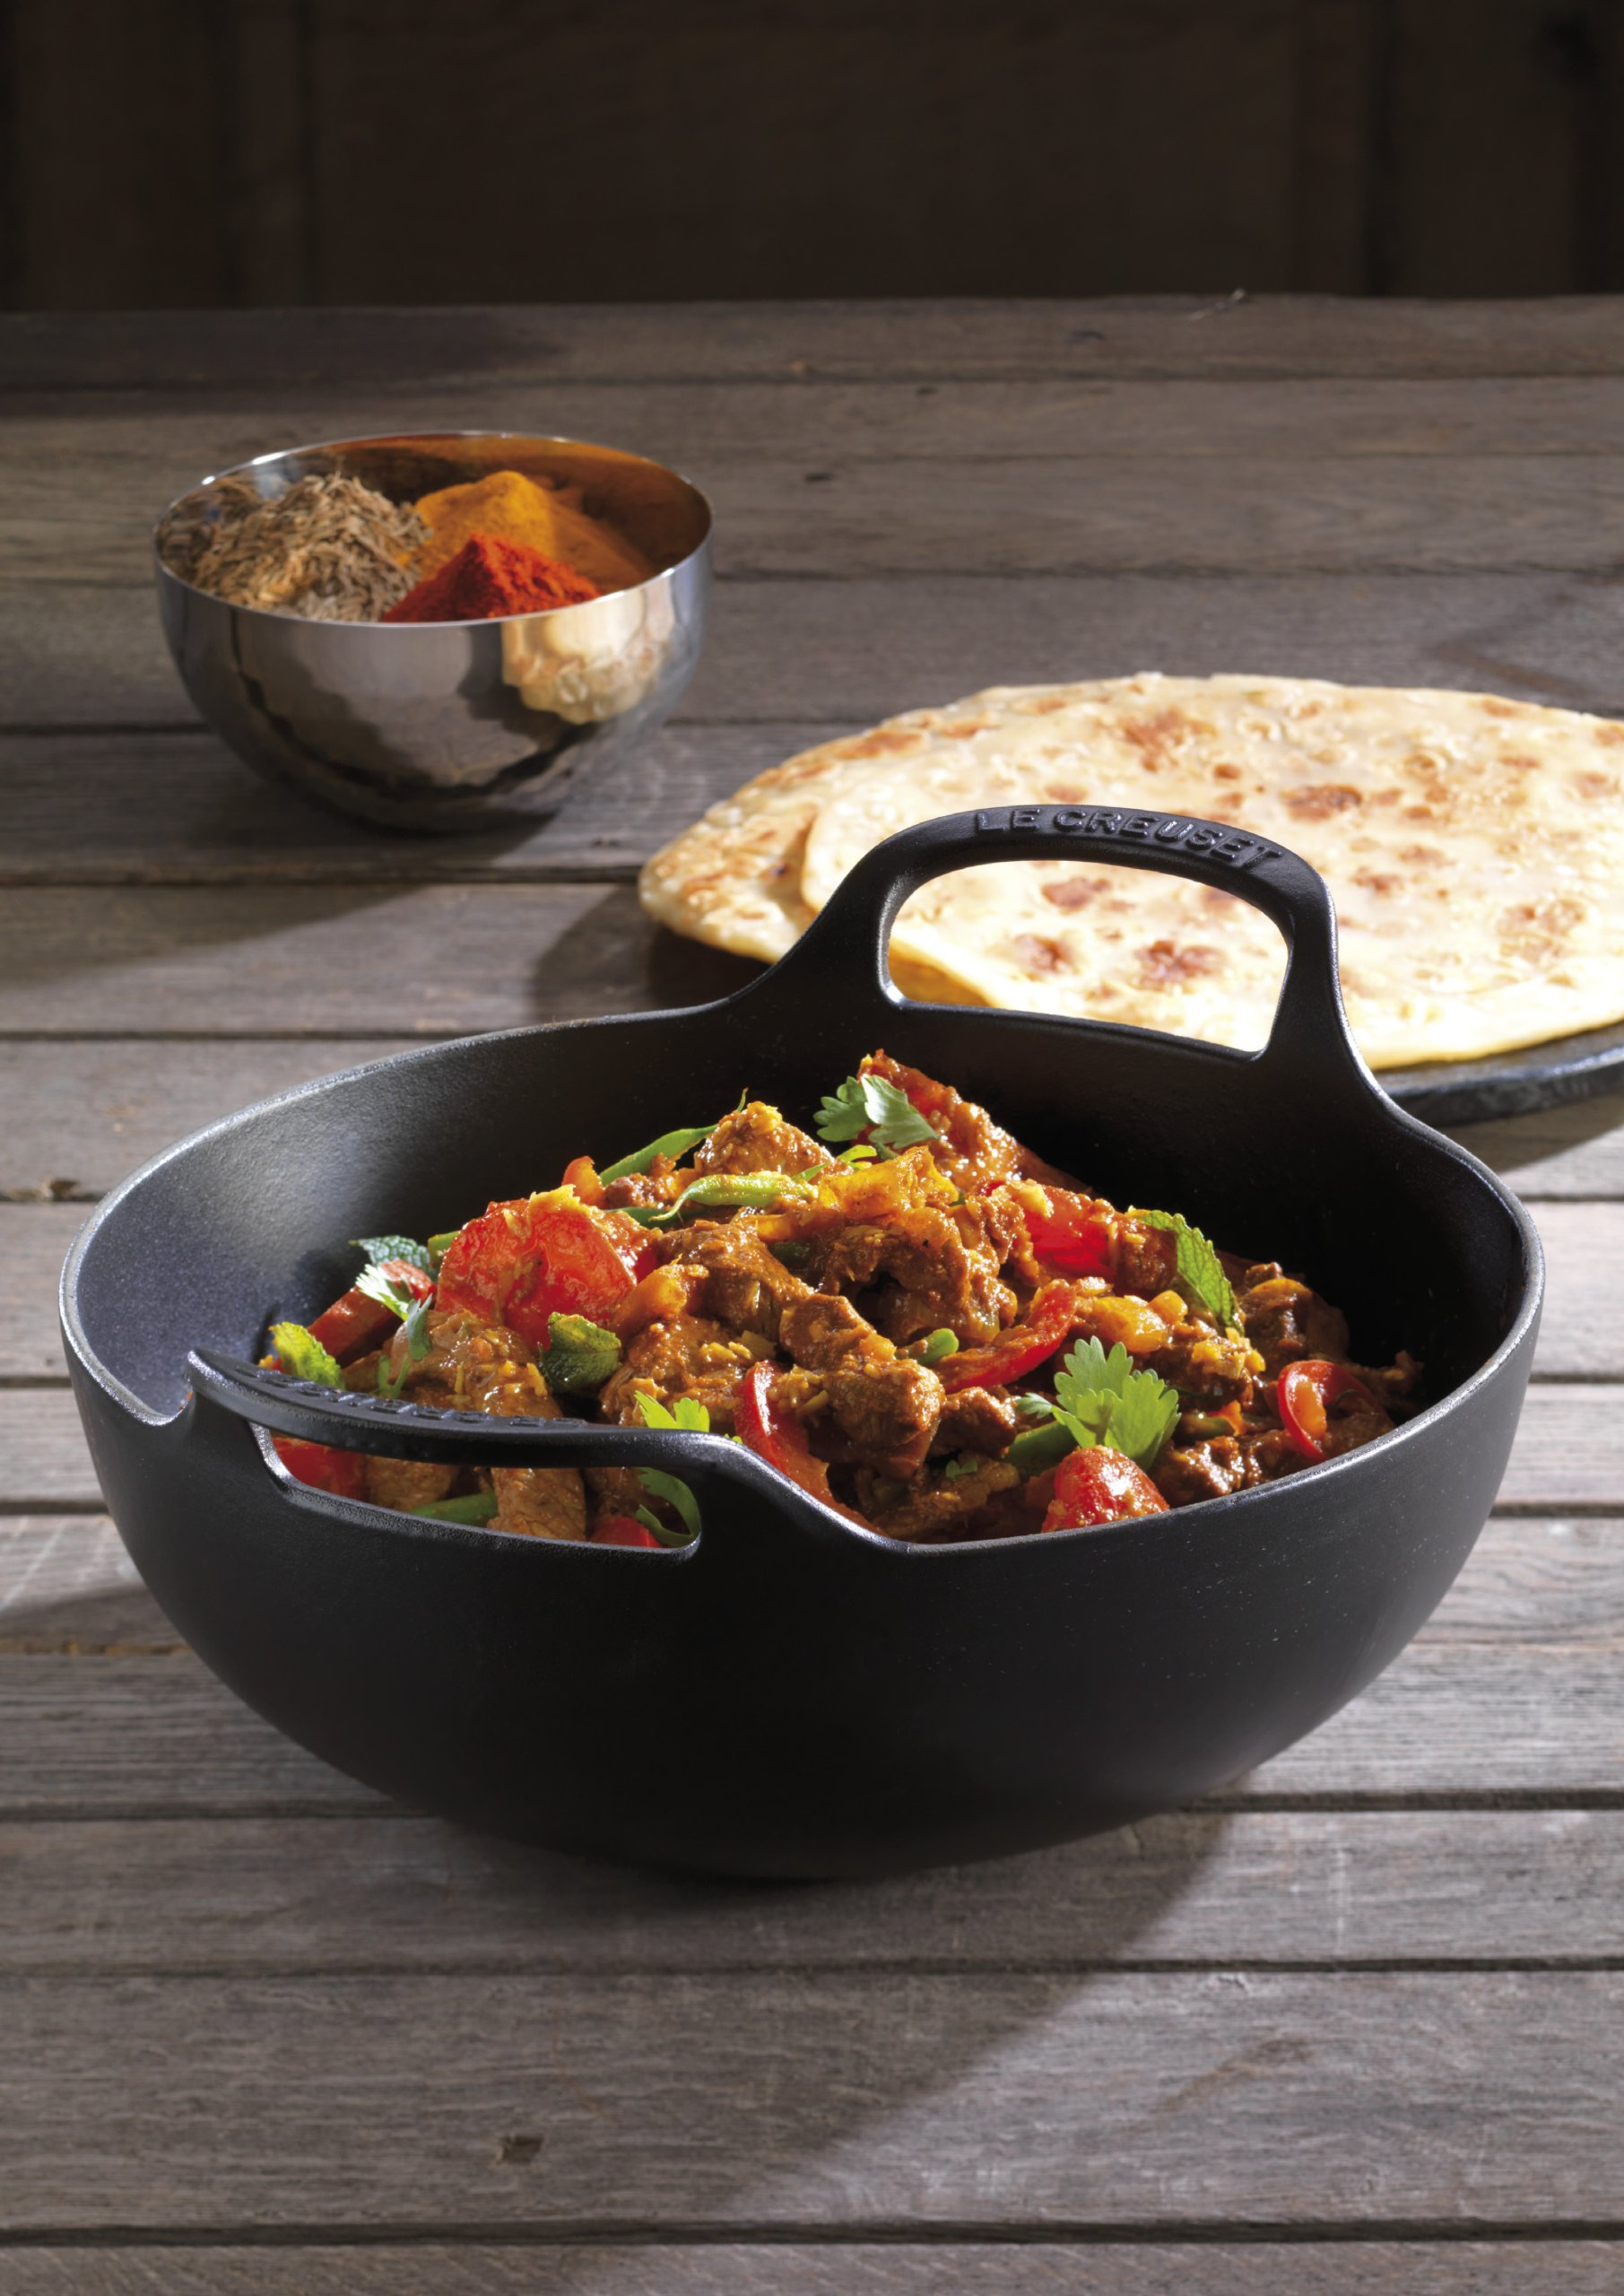 Le Creuset Lifetime Guarantee: Le Creuset L2042-2420 Enameled Cast Iron 3 Quart Balti